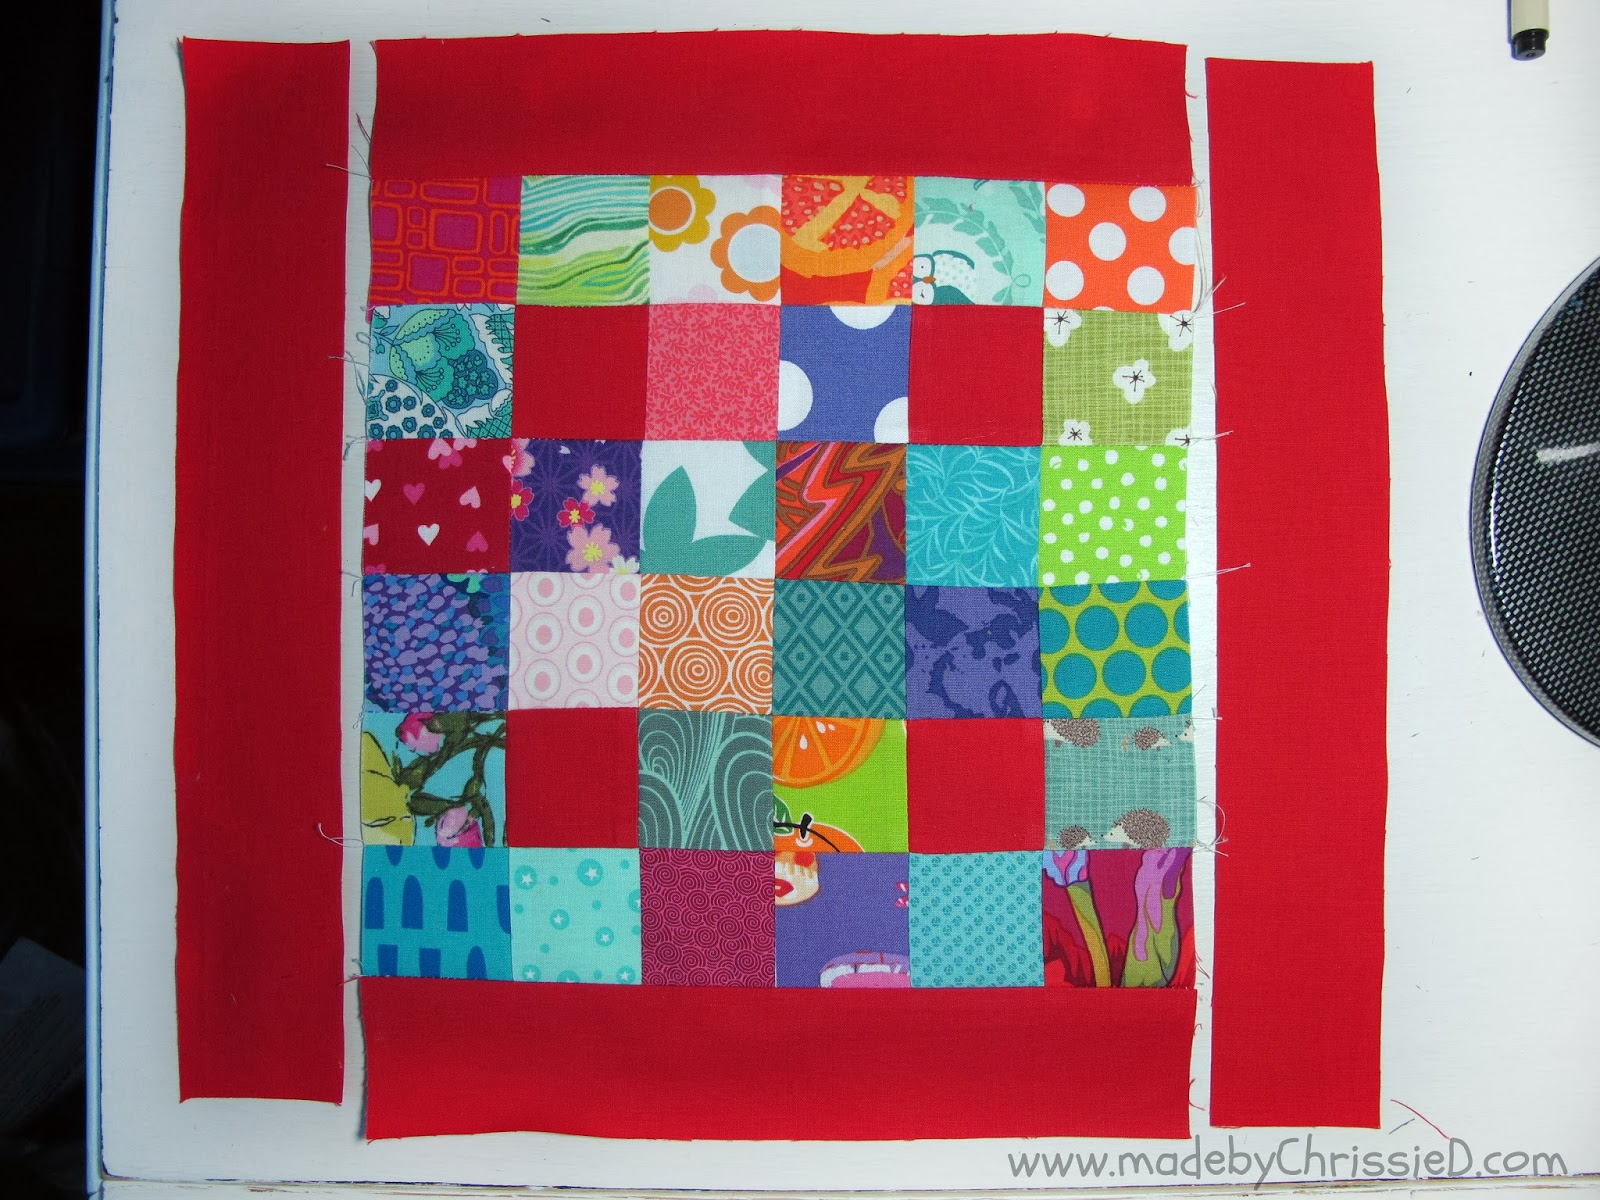 Easy Scrappy Nine Patches Tute by www.madebyChrissieD.com